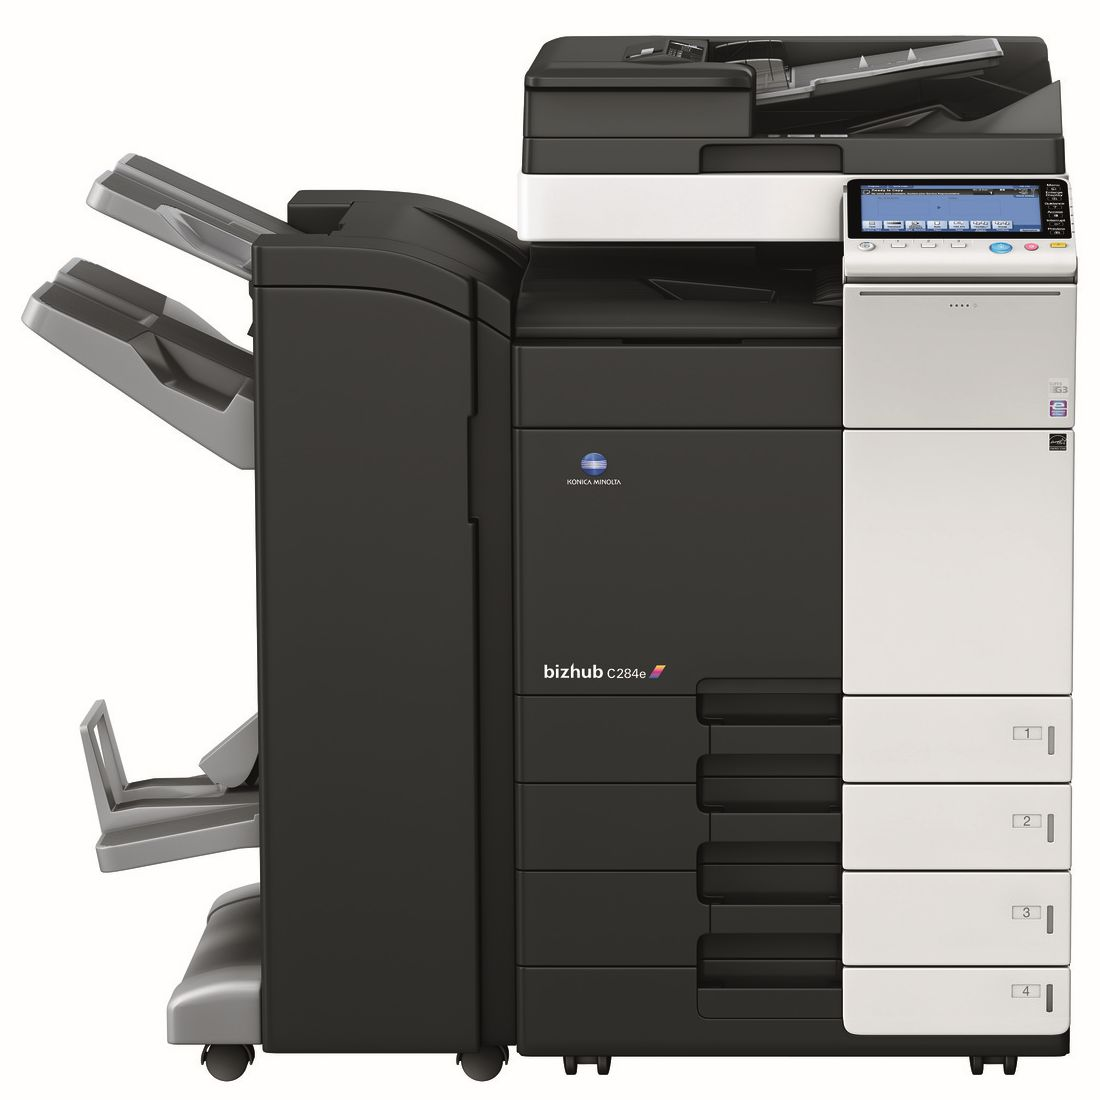 Get Free Konica Minolta Bizhub C284e Pay For Copies Only